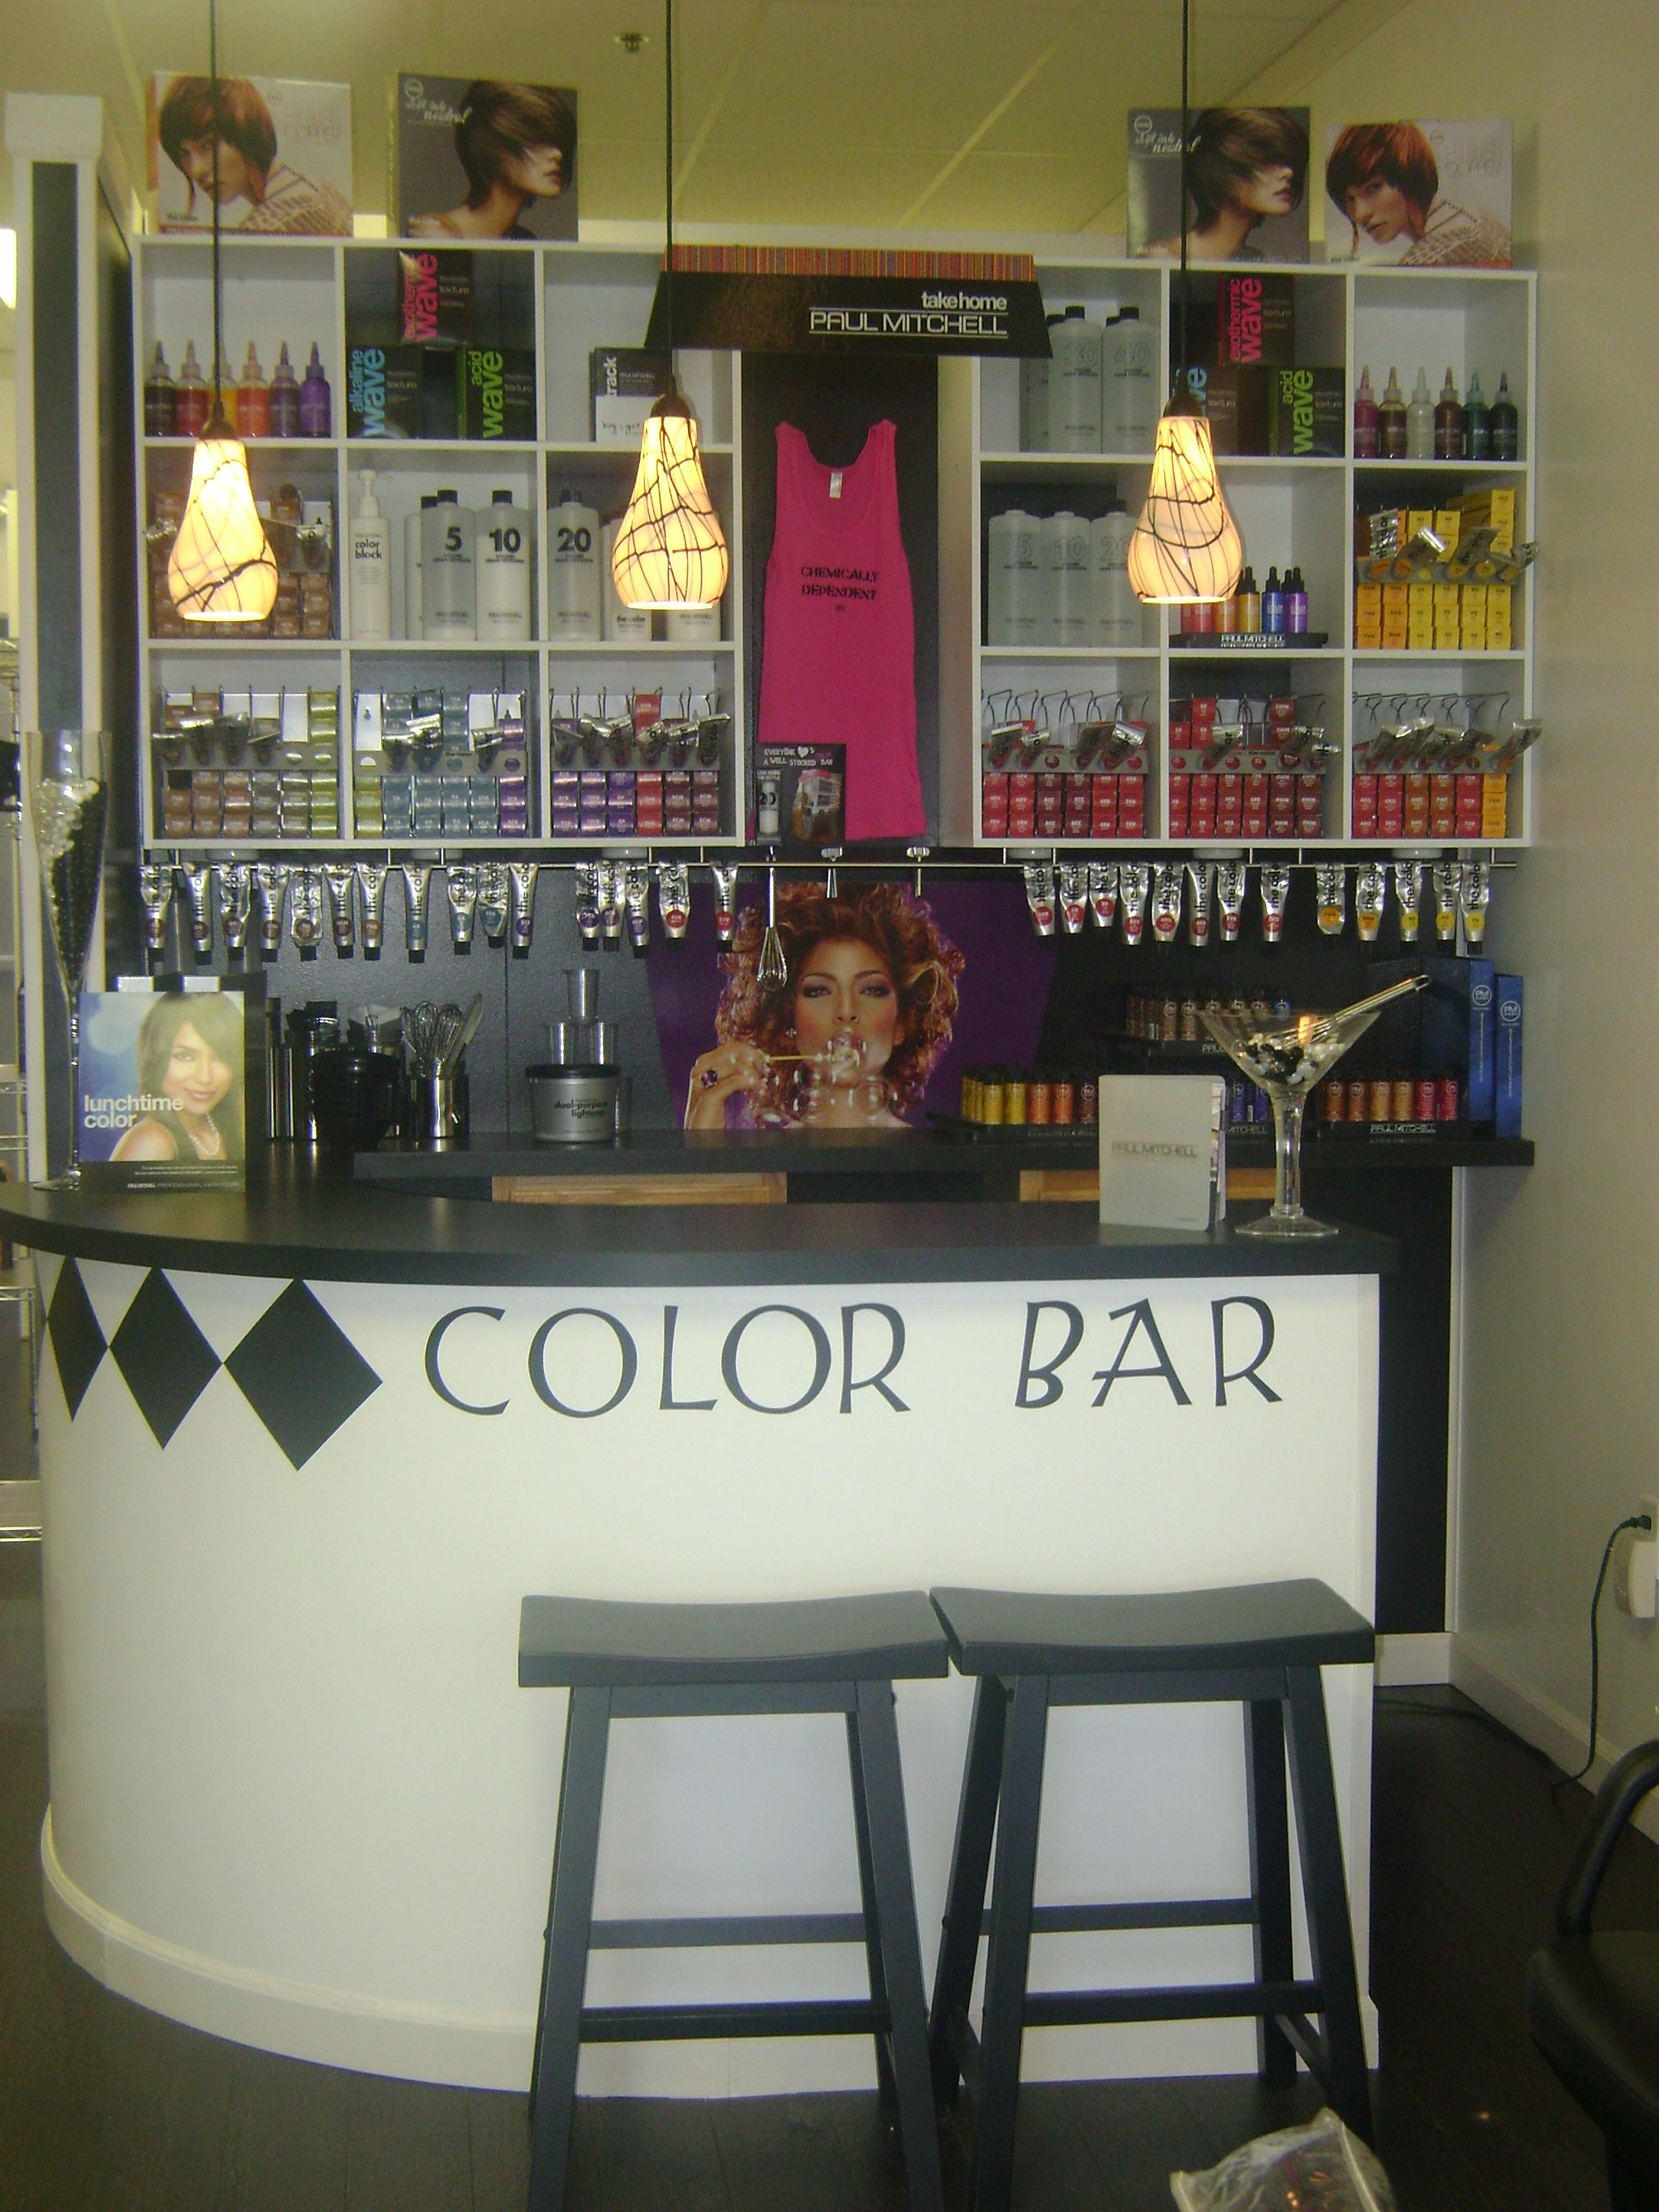 Captivating PERFECT FOR A COLOR BAR!!!! | Salon | Pinterest | Bar, Salons And Salon  Ideas